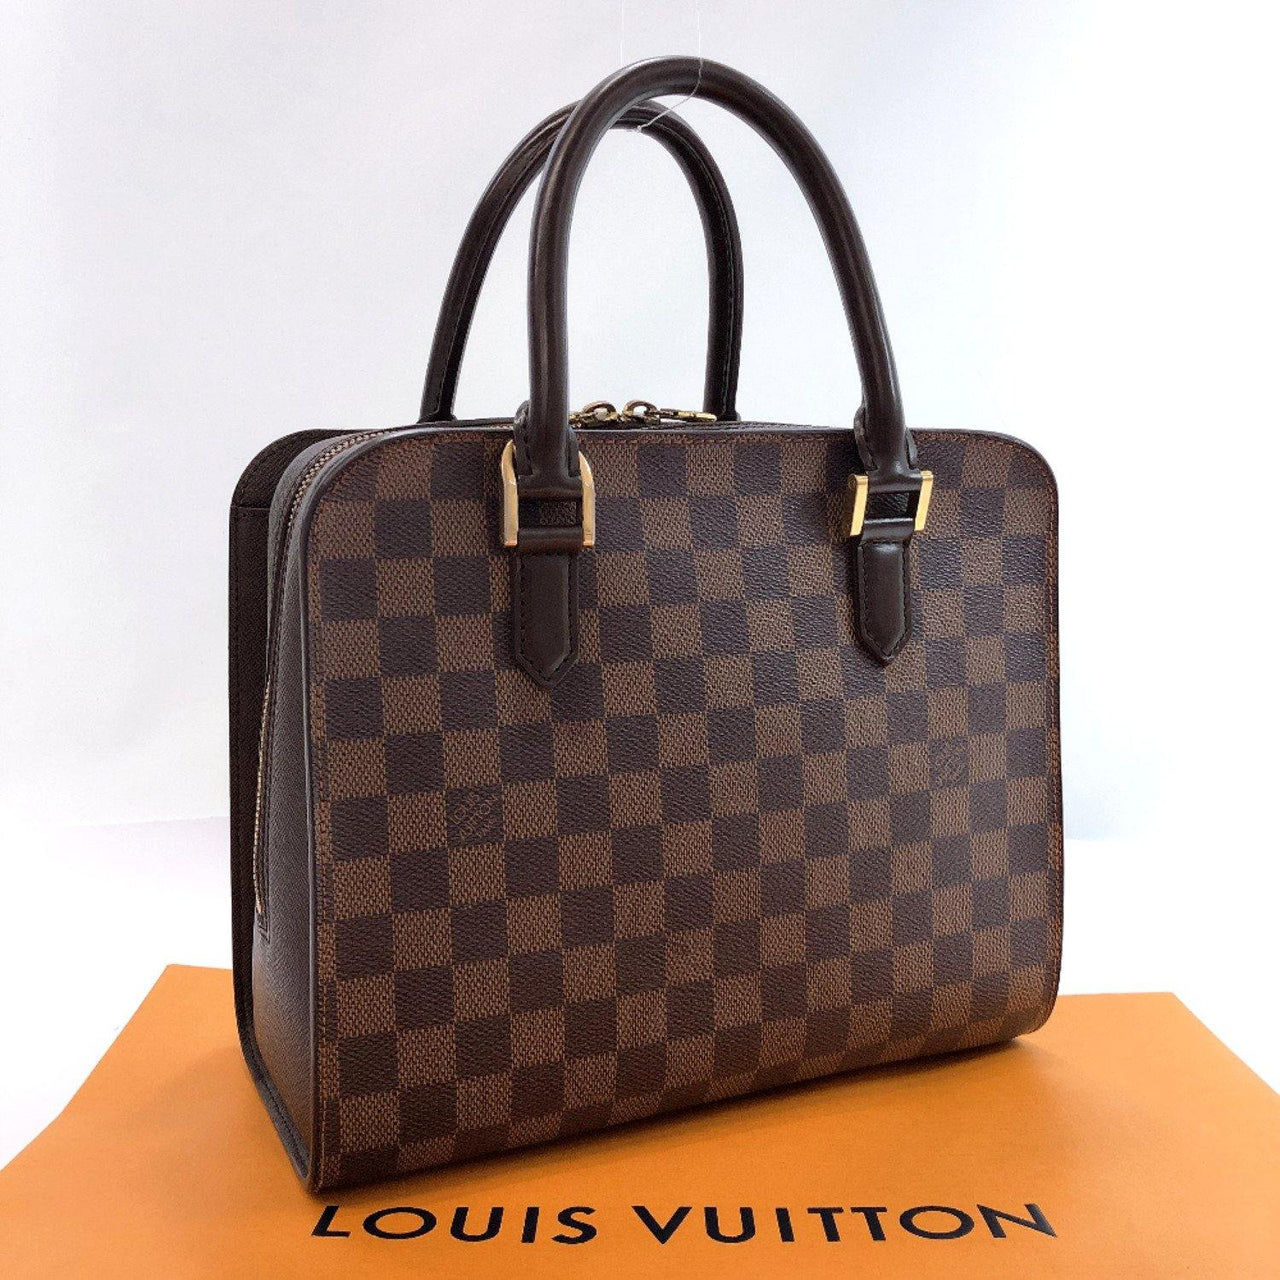 LOUIS VUITTON Handbag N51155 Triana Damier canvas Brown Women Used - JP-BRANDS.com